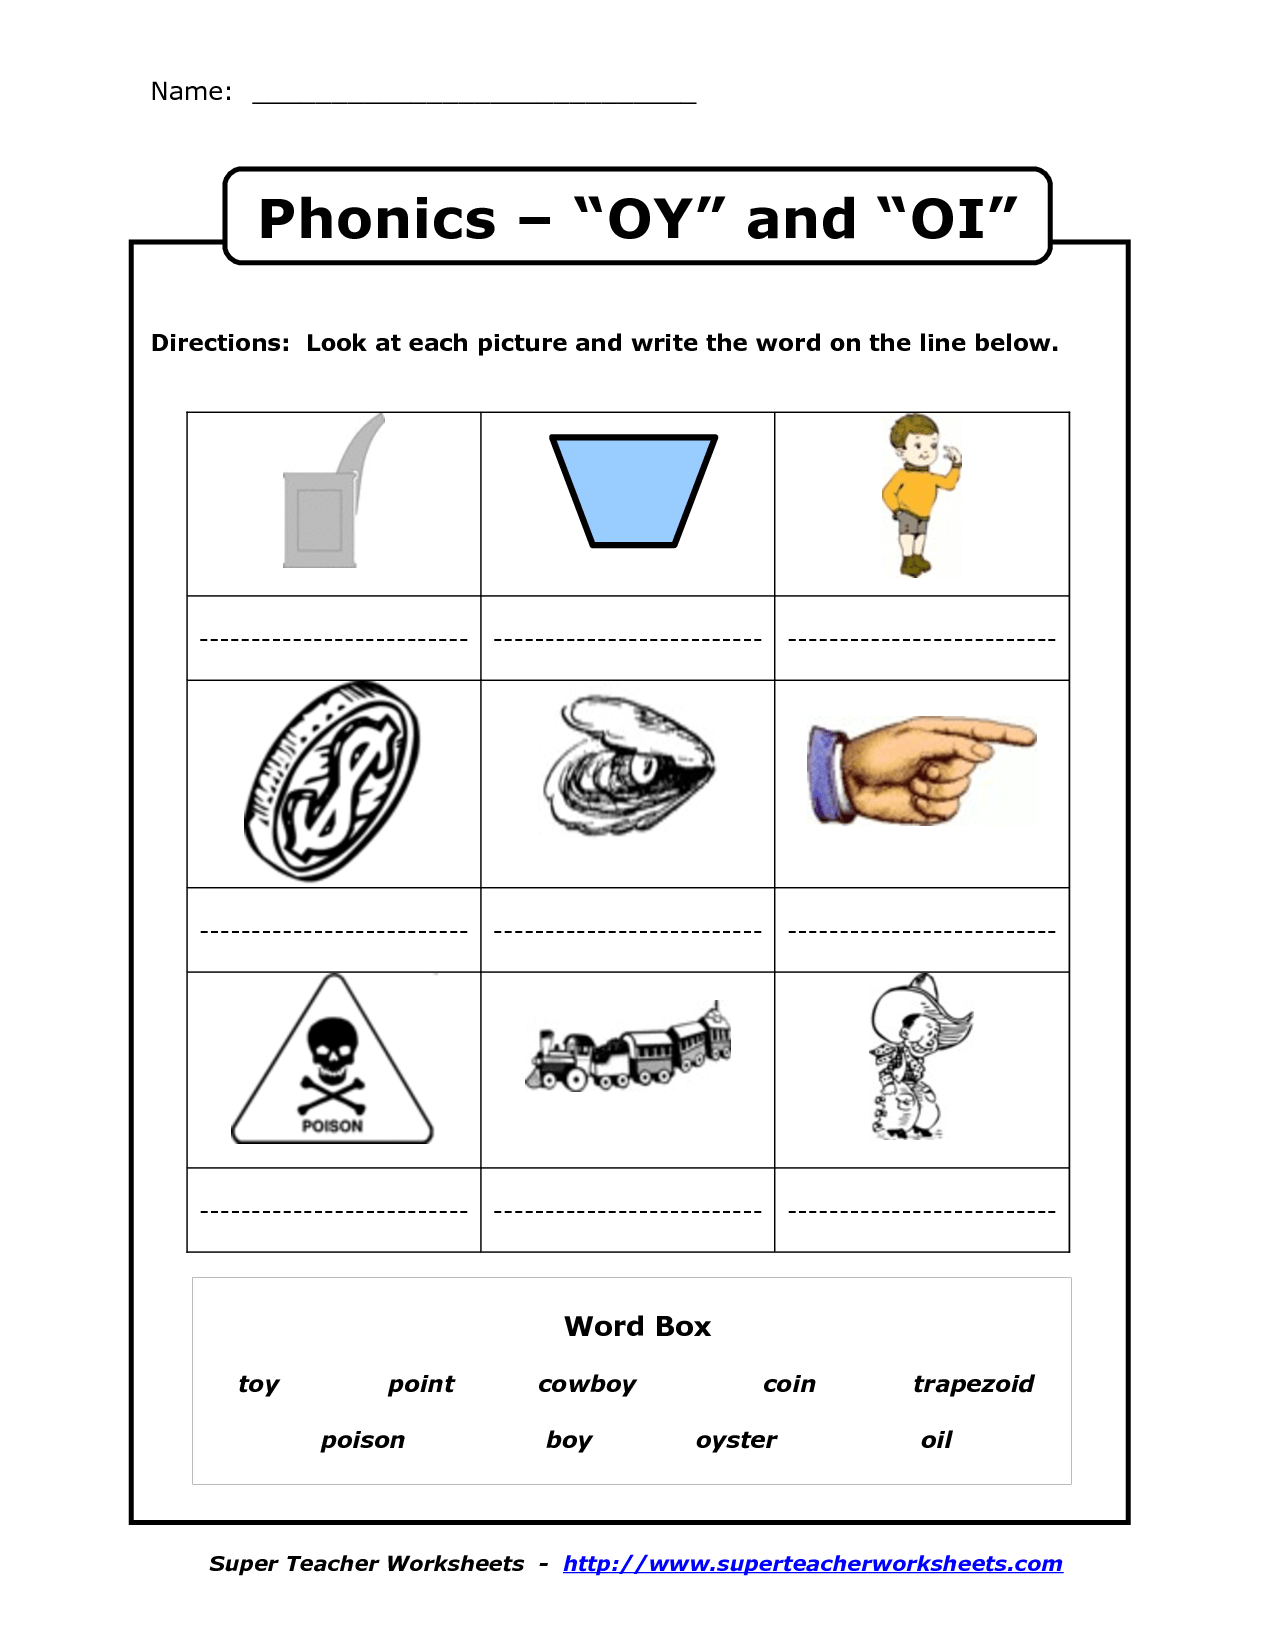 Phonics Games Worksheet